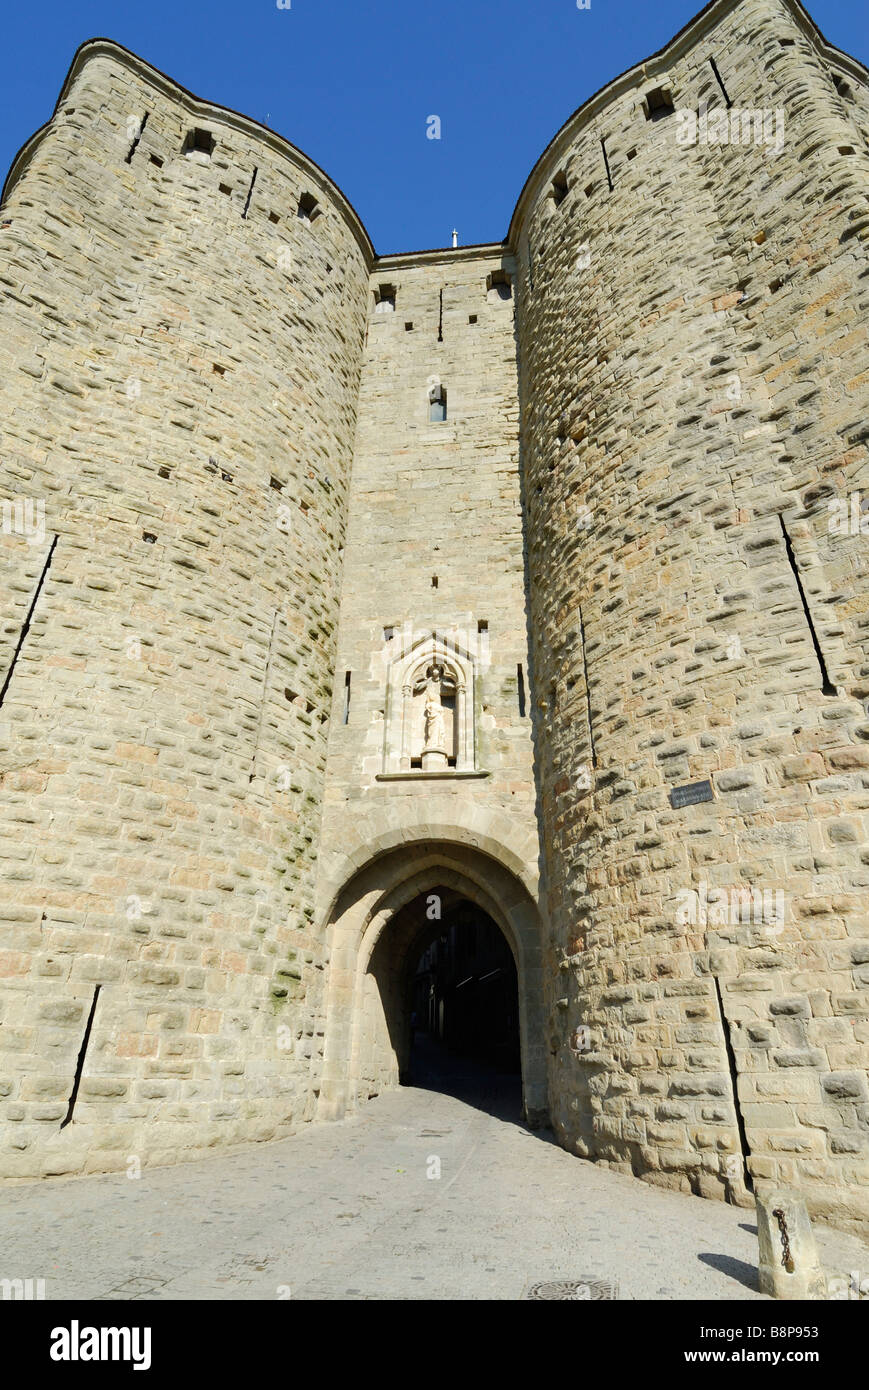 Carcassonne France Porte Narbonnaise east entry gate to the medieval walled Cité - Stock Image